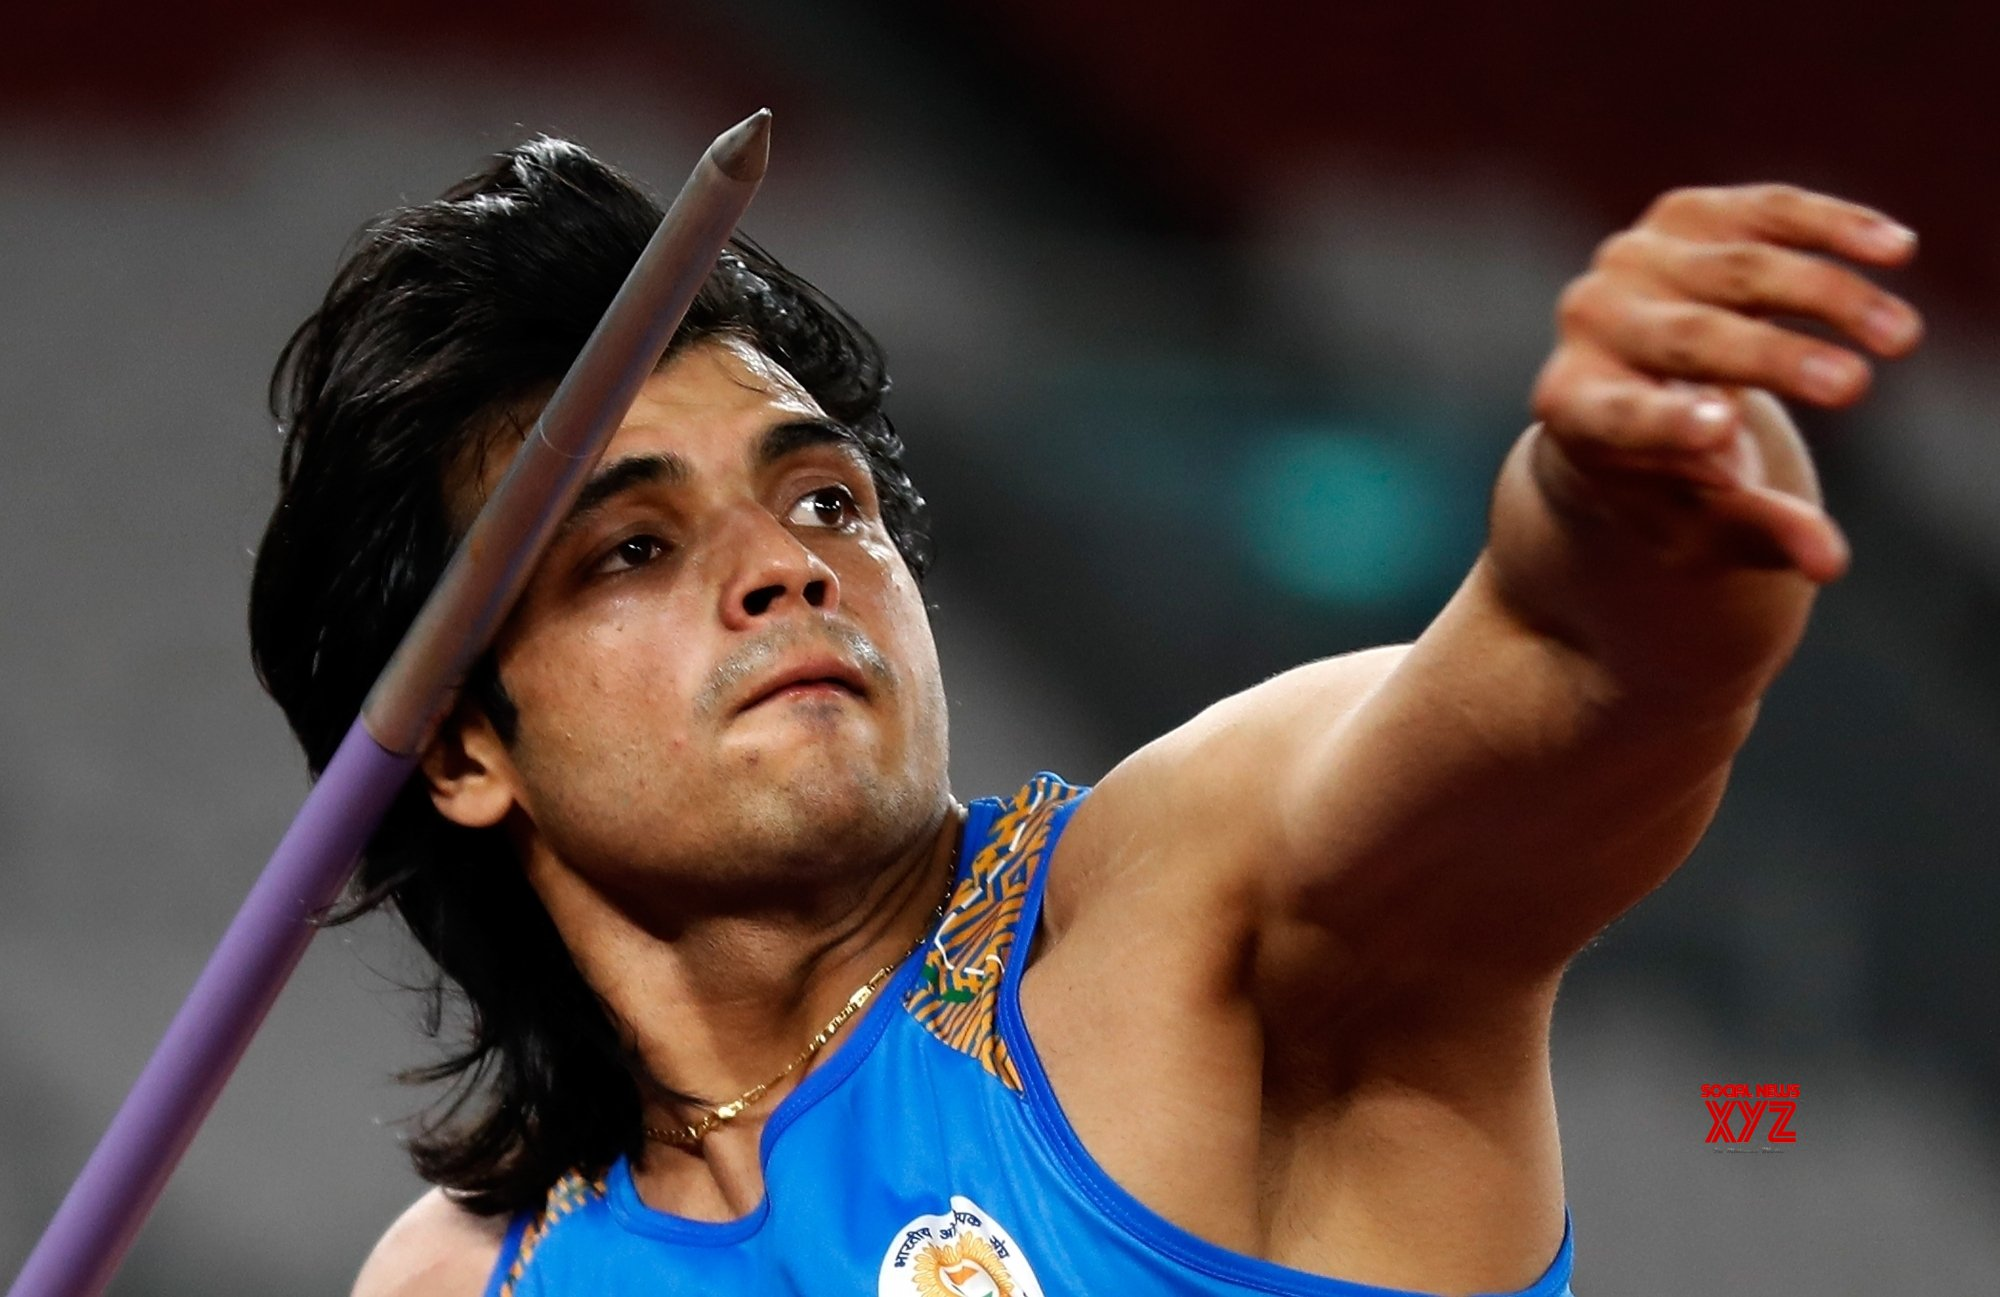 2nd GP Athletics: Javelin throwers Chopra, Shivapal to compete